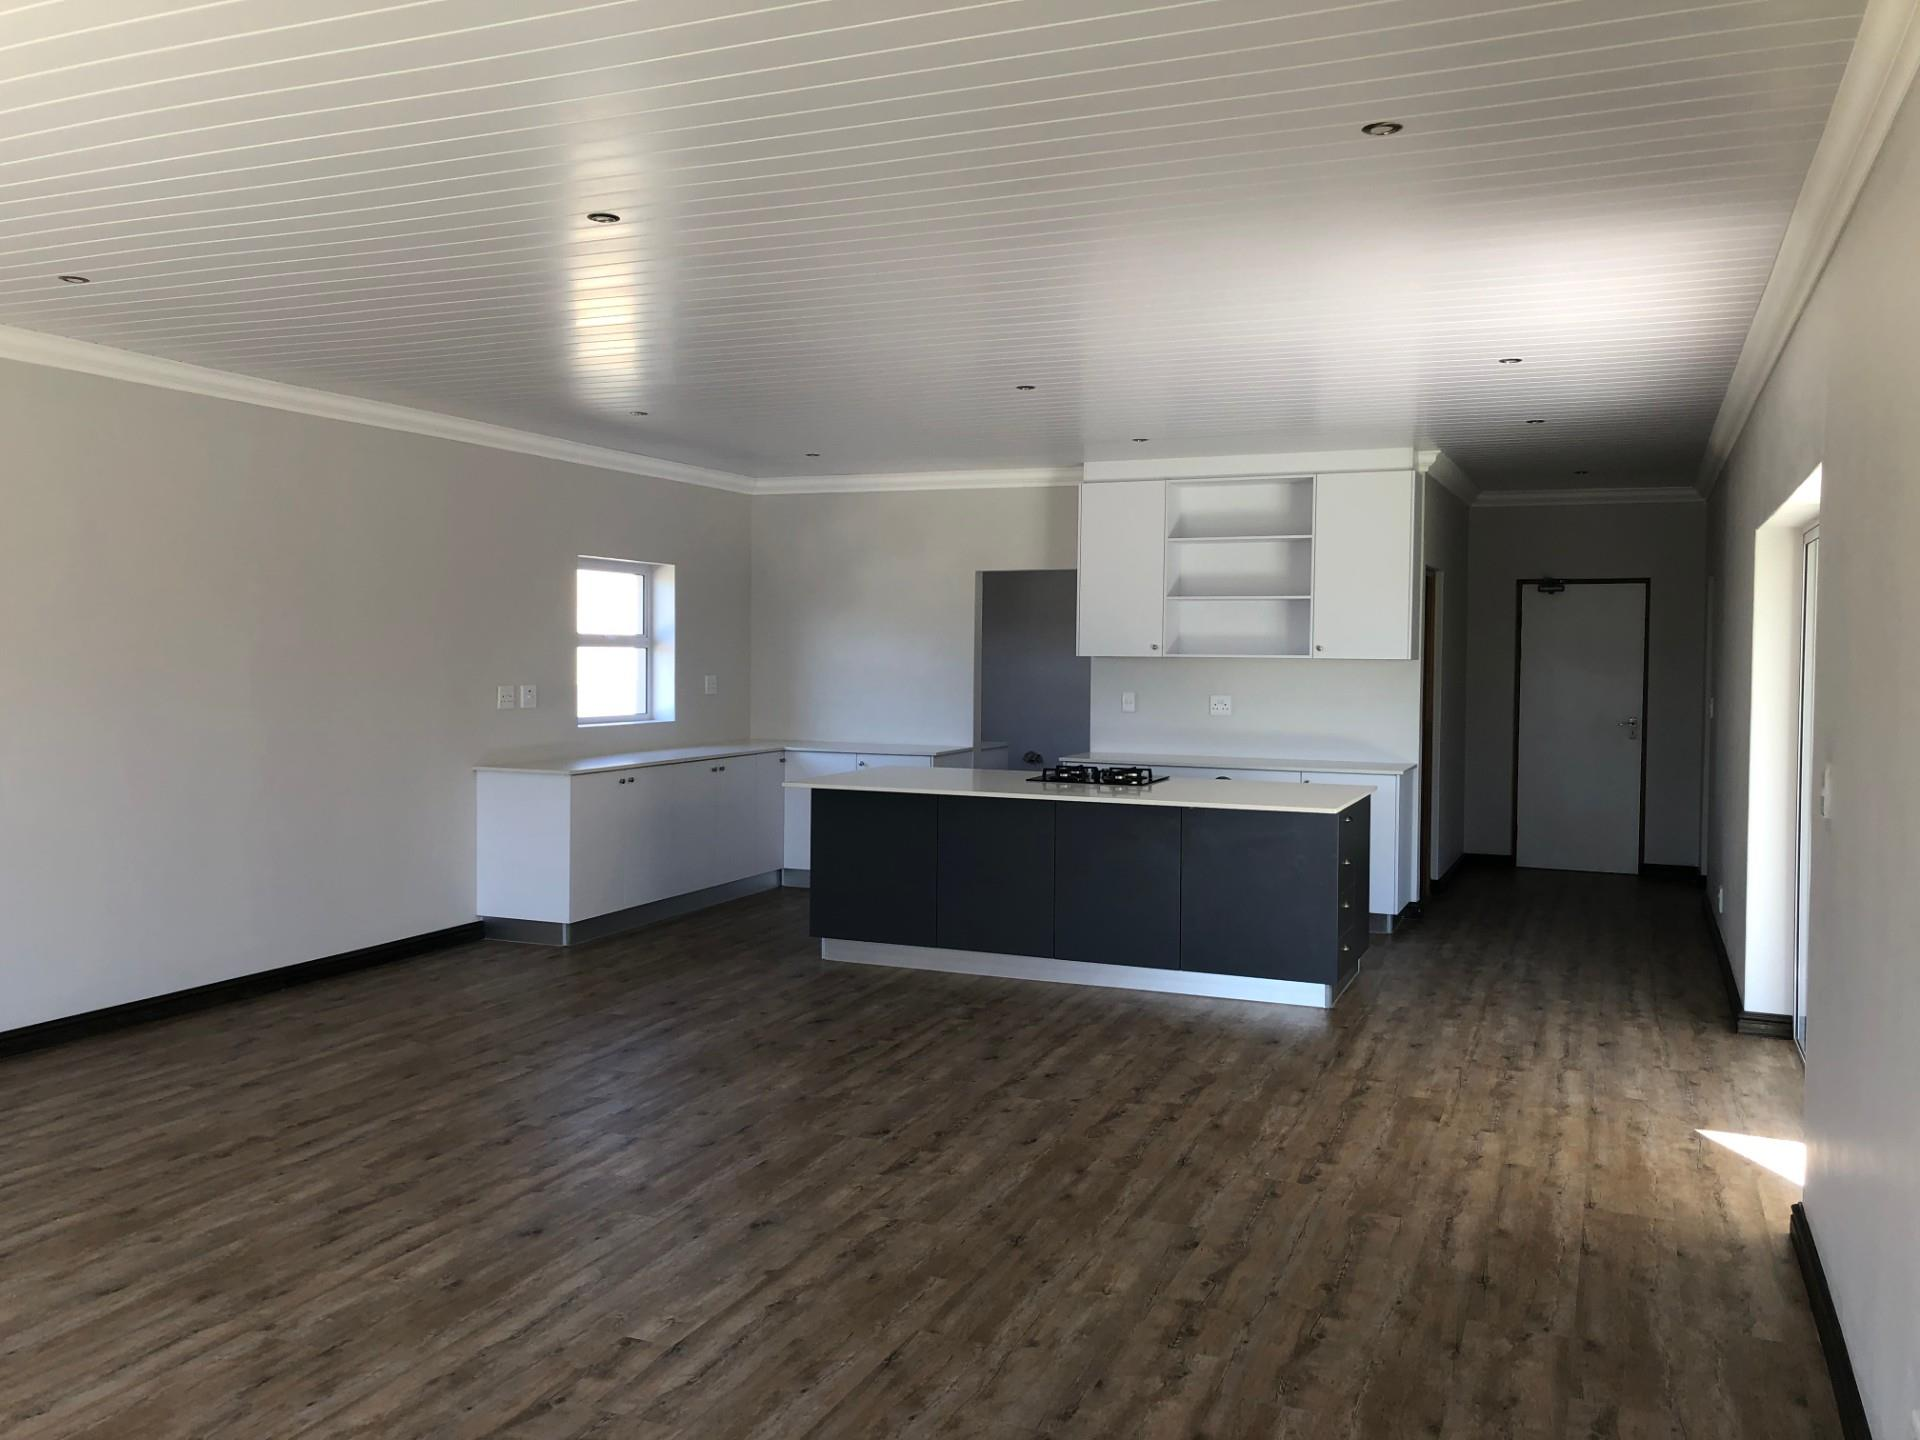 3 Bedroom House For Sale in Paarl North